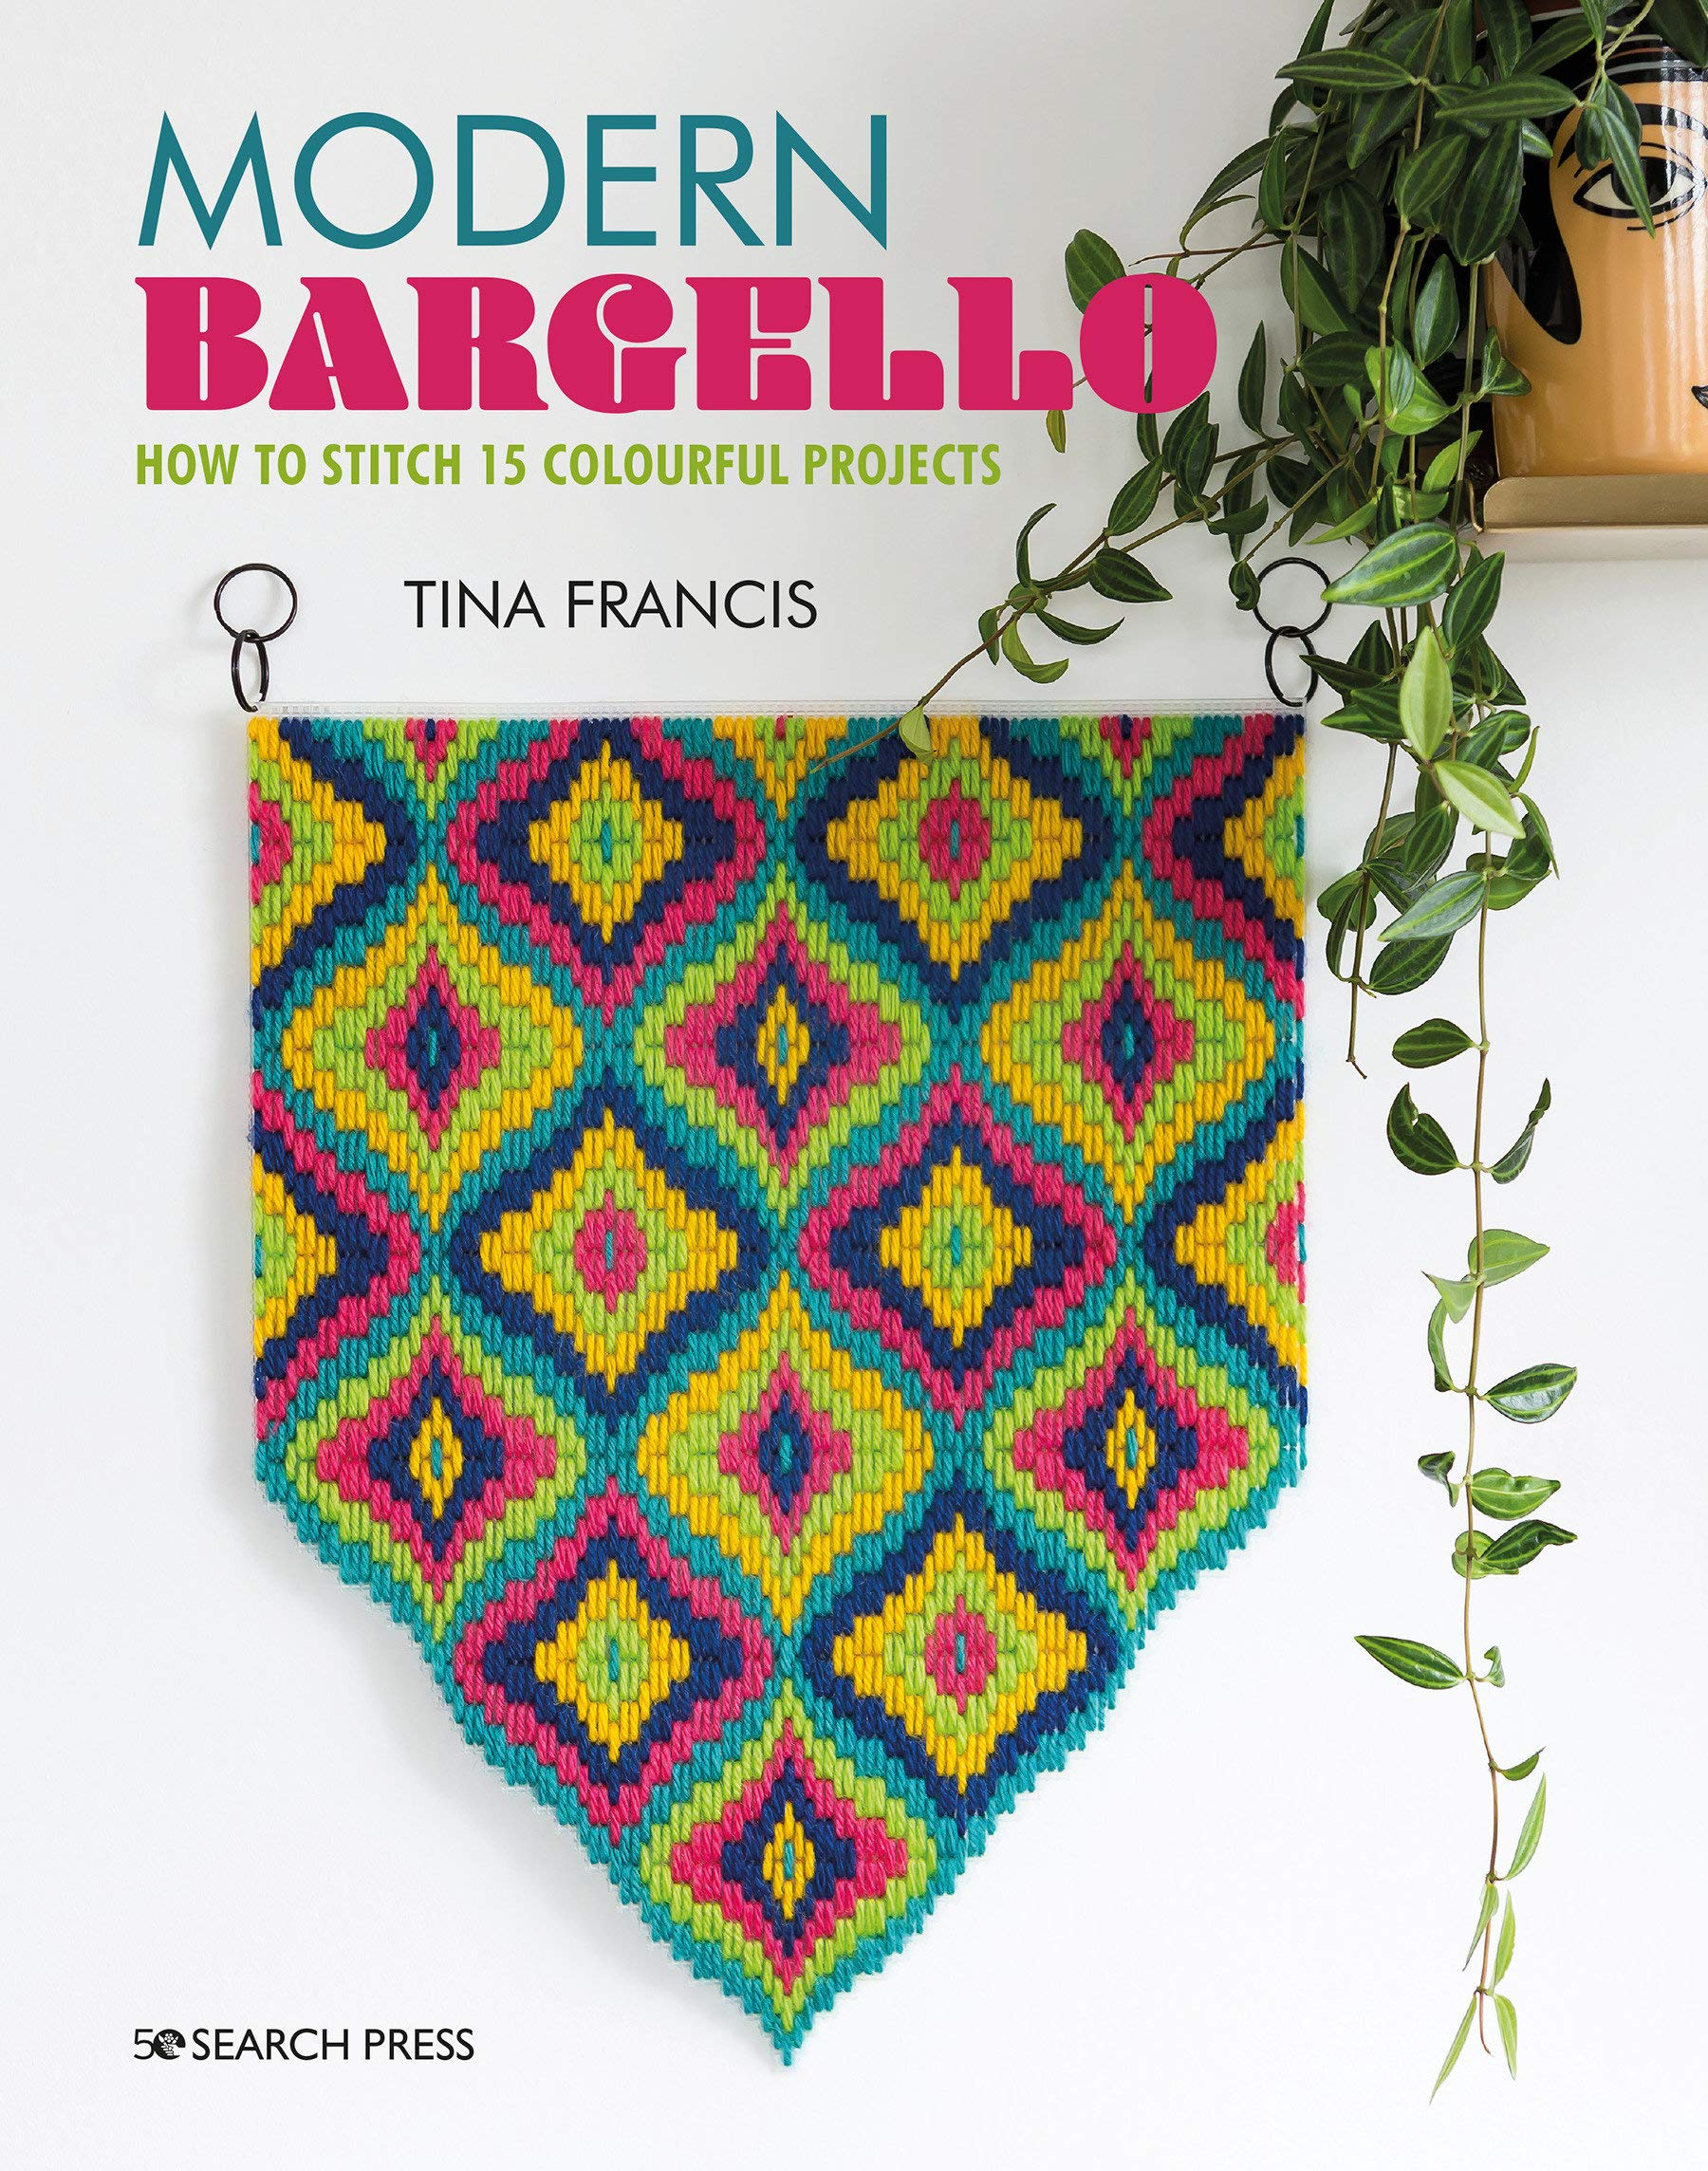 Modern Bargello: How to stitch 15 colourful projects by Tina Francis